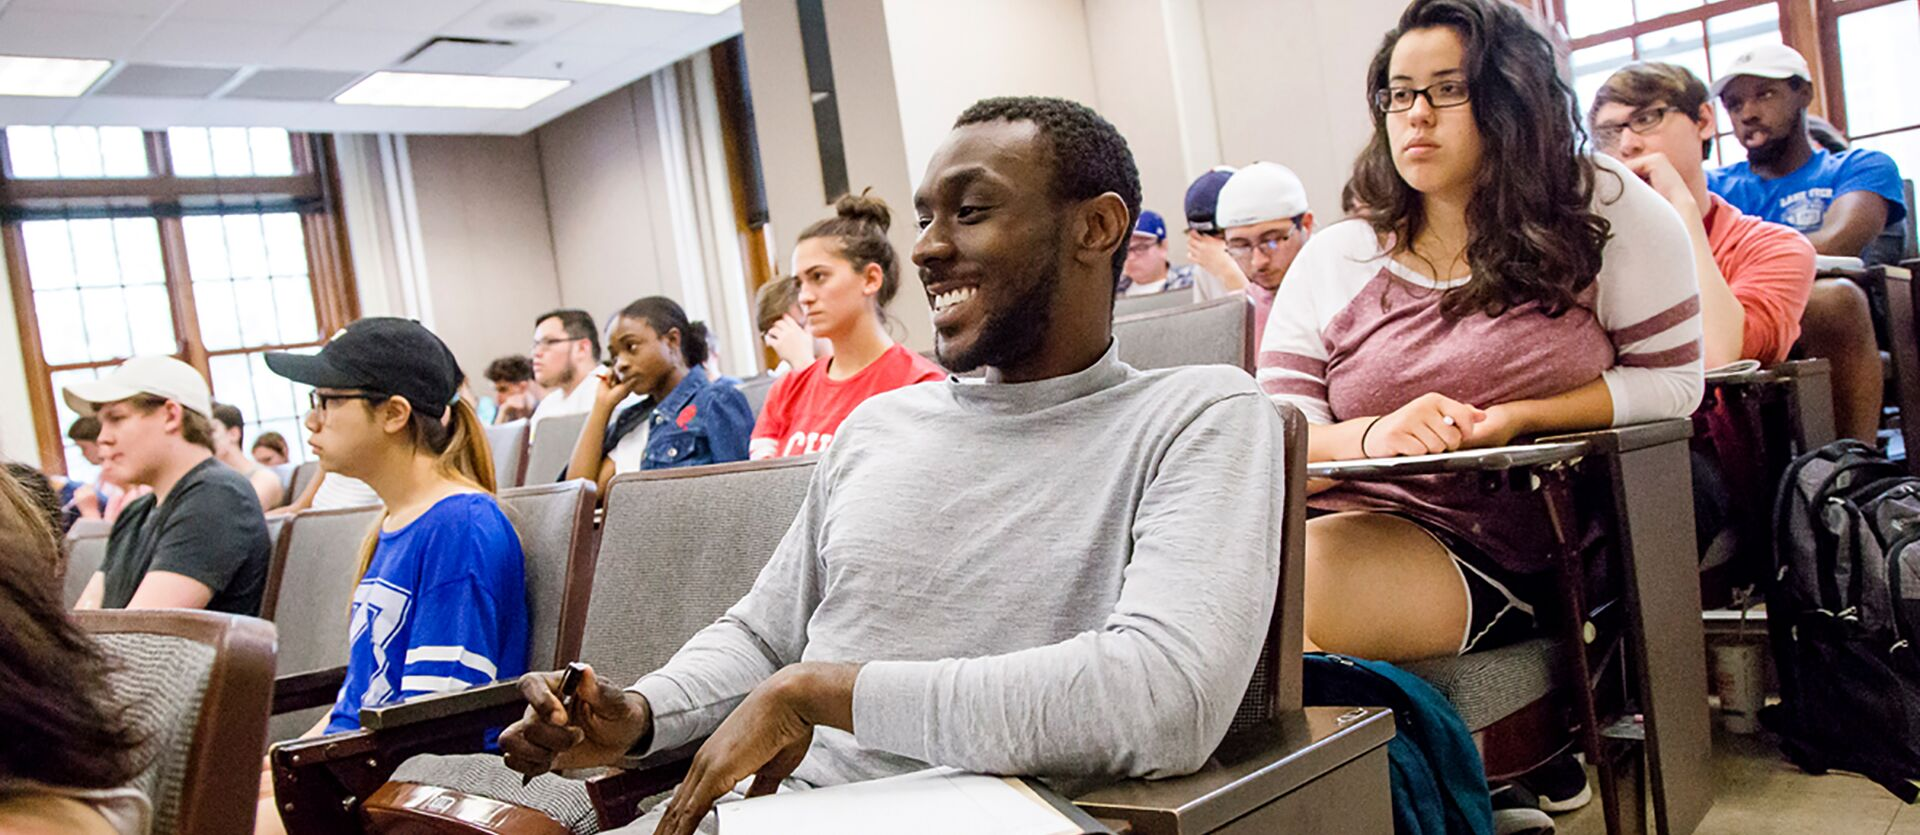 Smiling students sitting in a lecture class